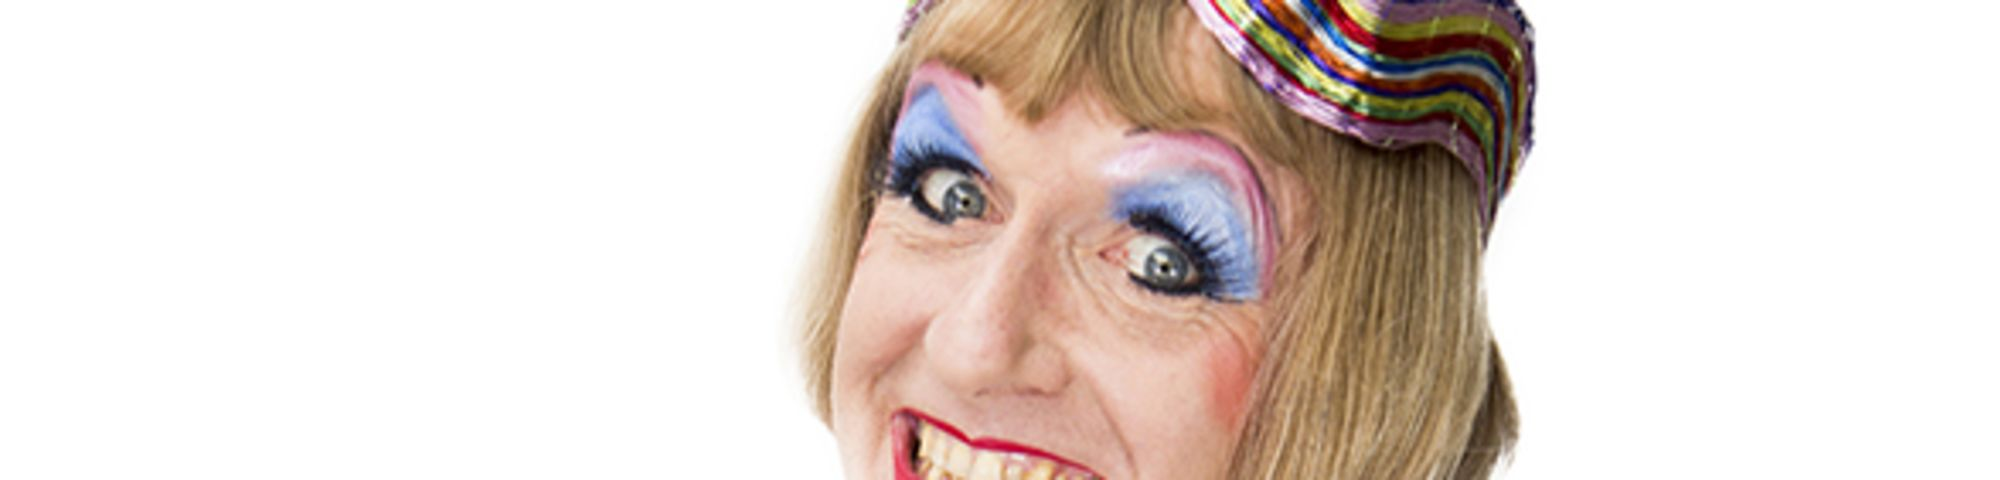 Grayson Perry_featuredimage